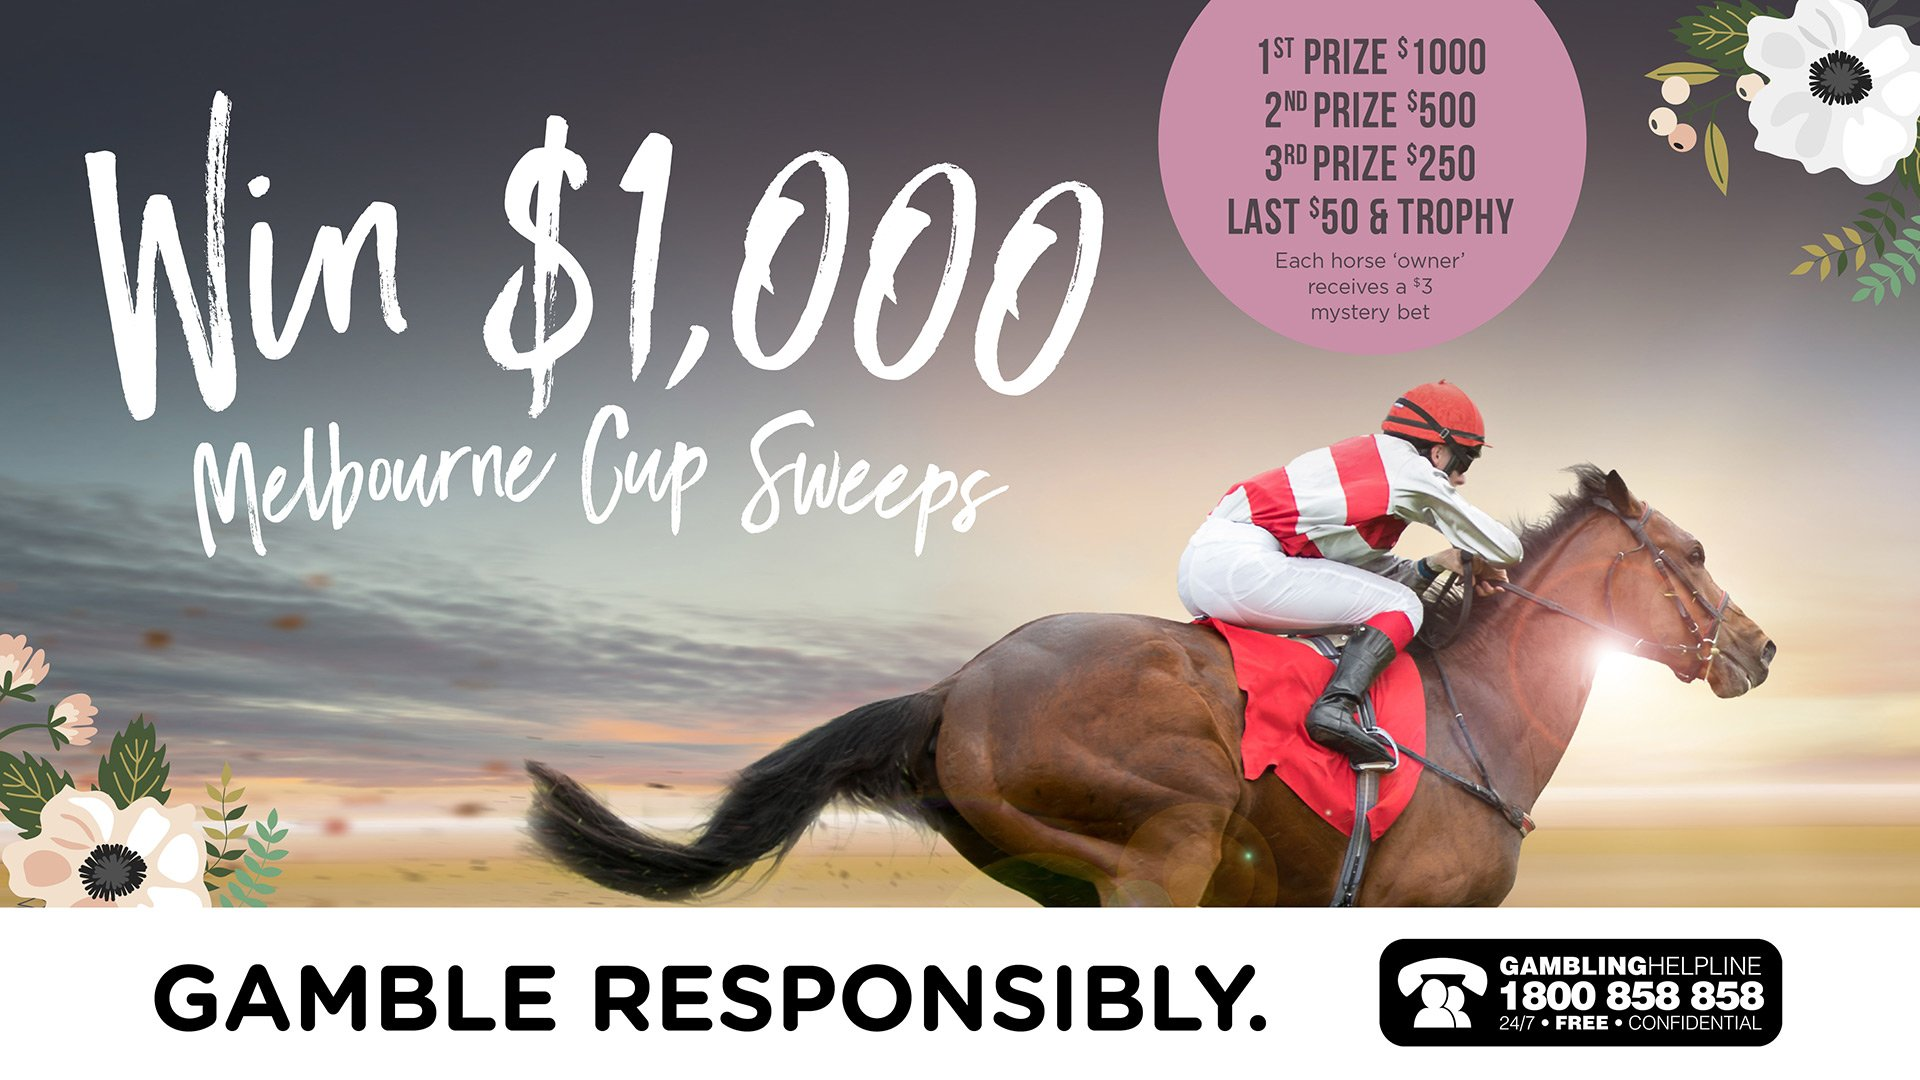 Melbourne Cup Sweeps